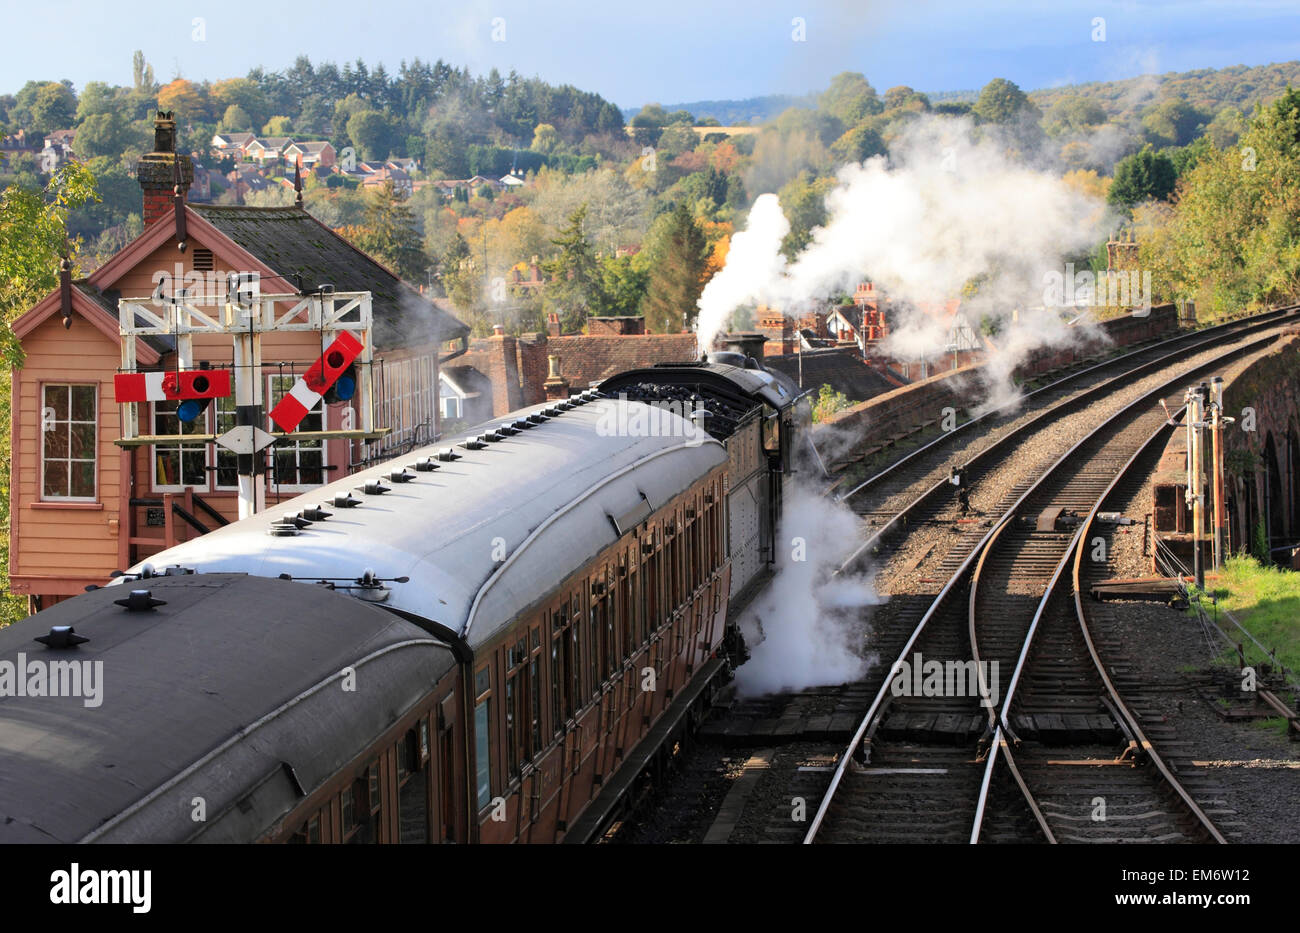 Ready to depart a passenger train prepares to head into the Severn Valley, Bewdley, Severn Valley Railway, Worcestershire, - Stock Image